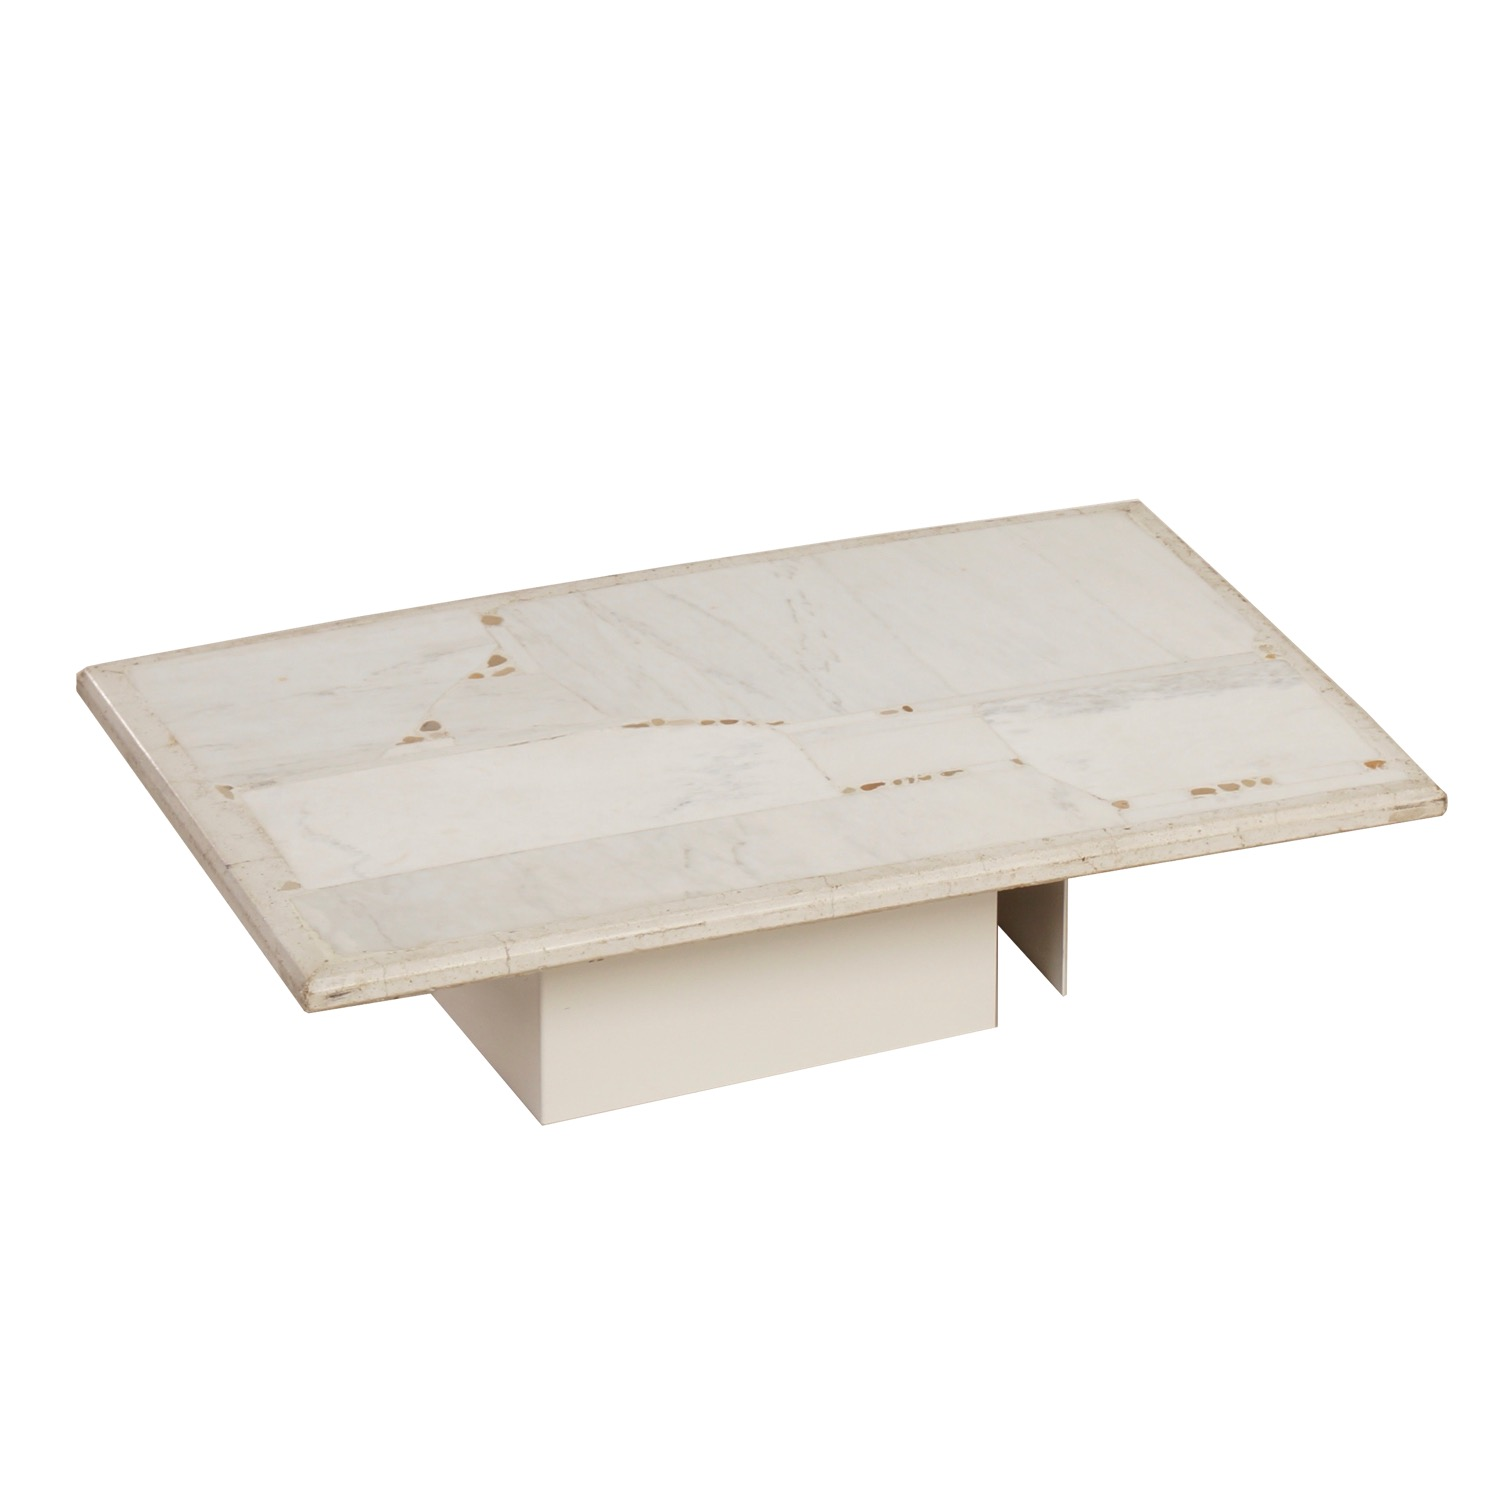 White Marble Coffee Table by Paul Kingma, 1982 | Mid Century Design